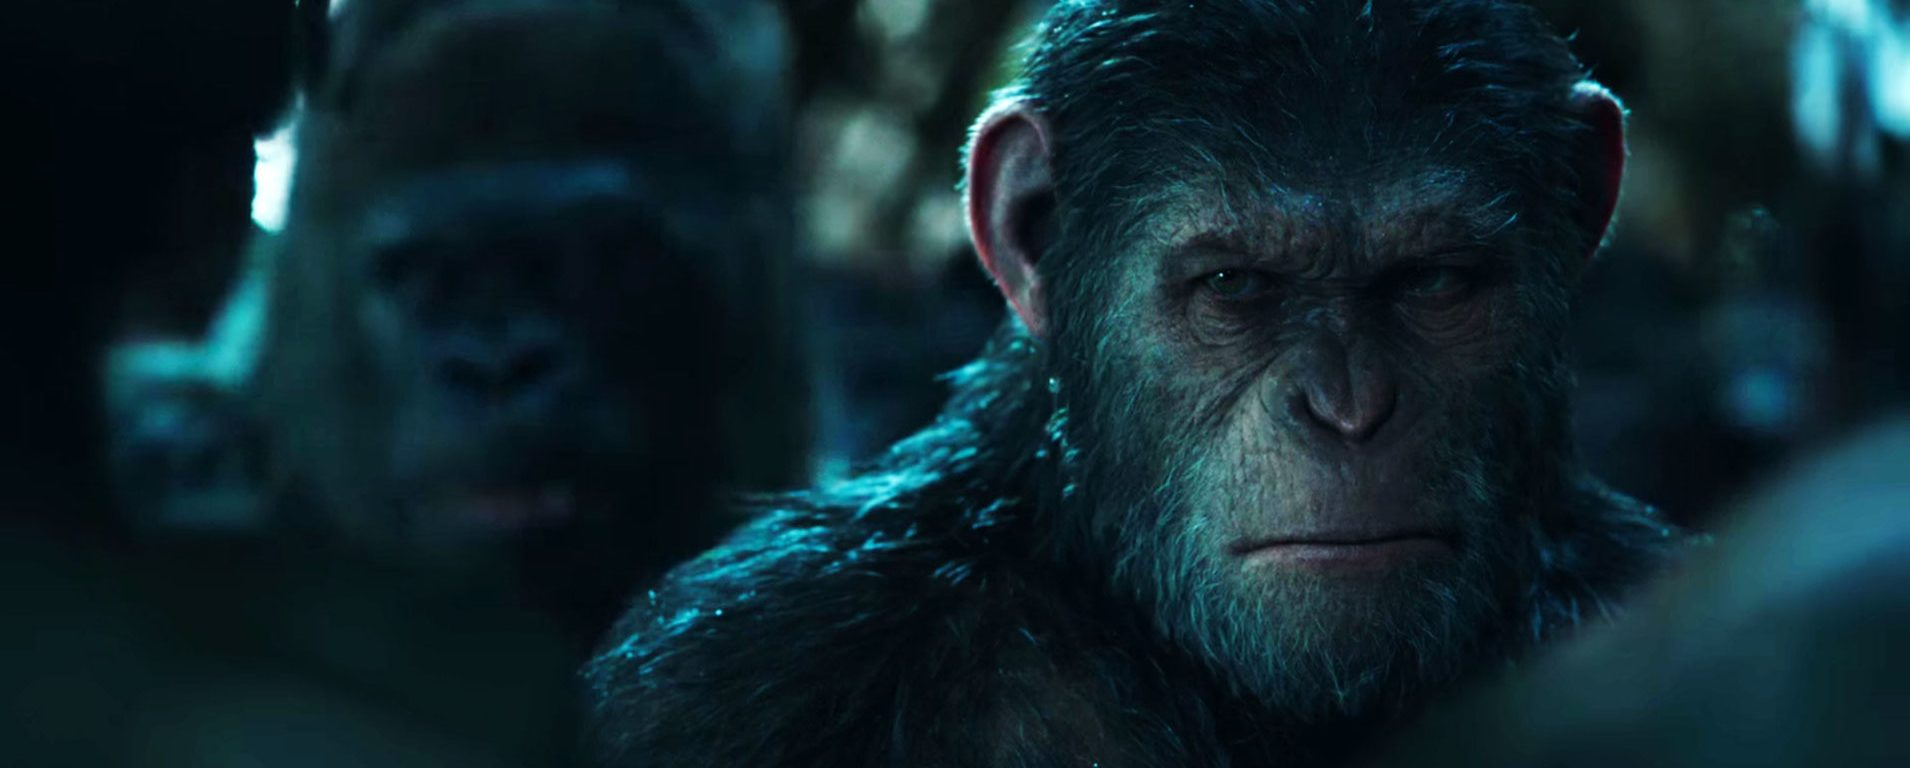 Review War For The Planet Of The Apes 2017 Fictionmachine